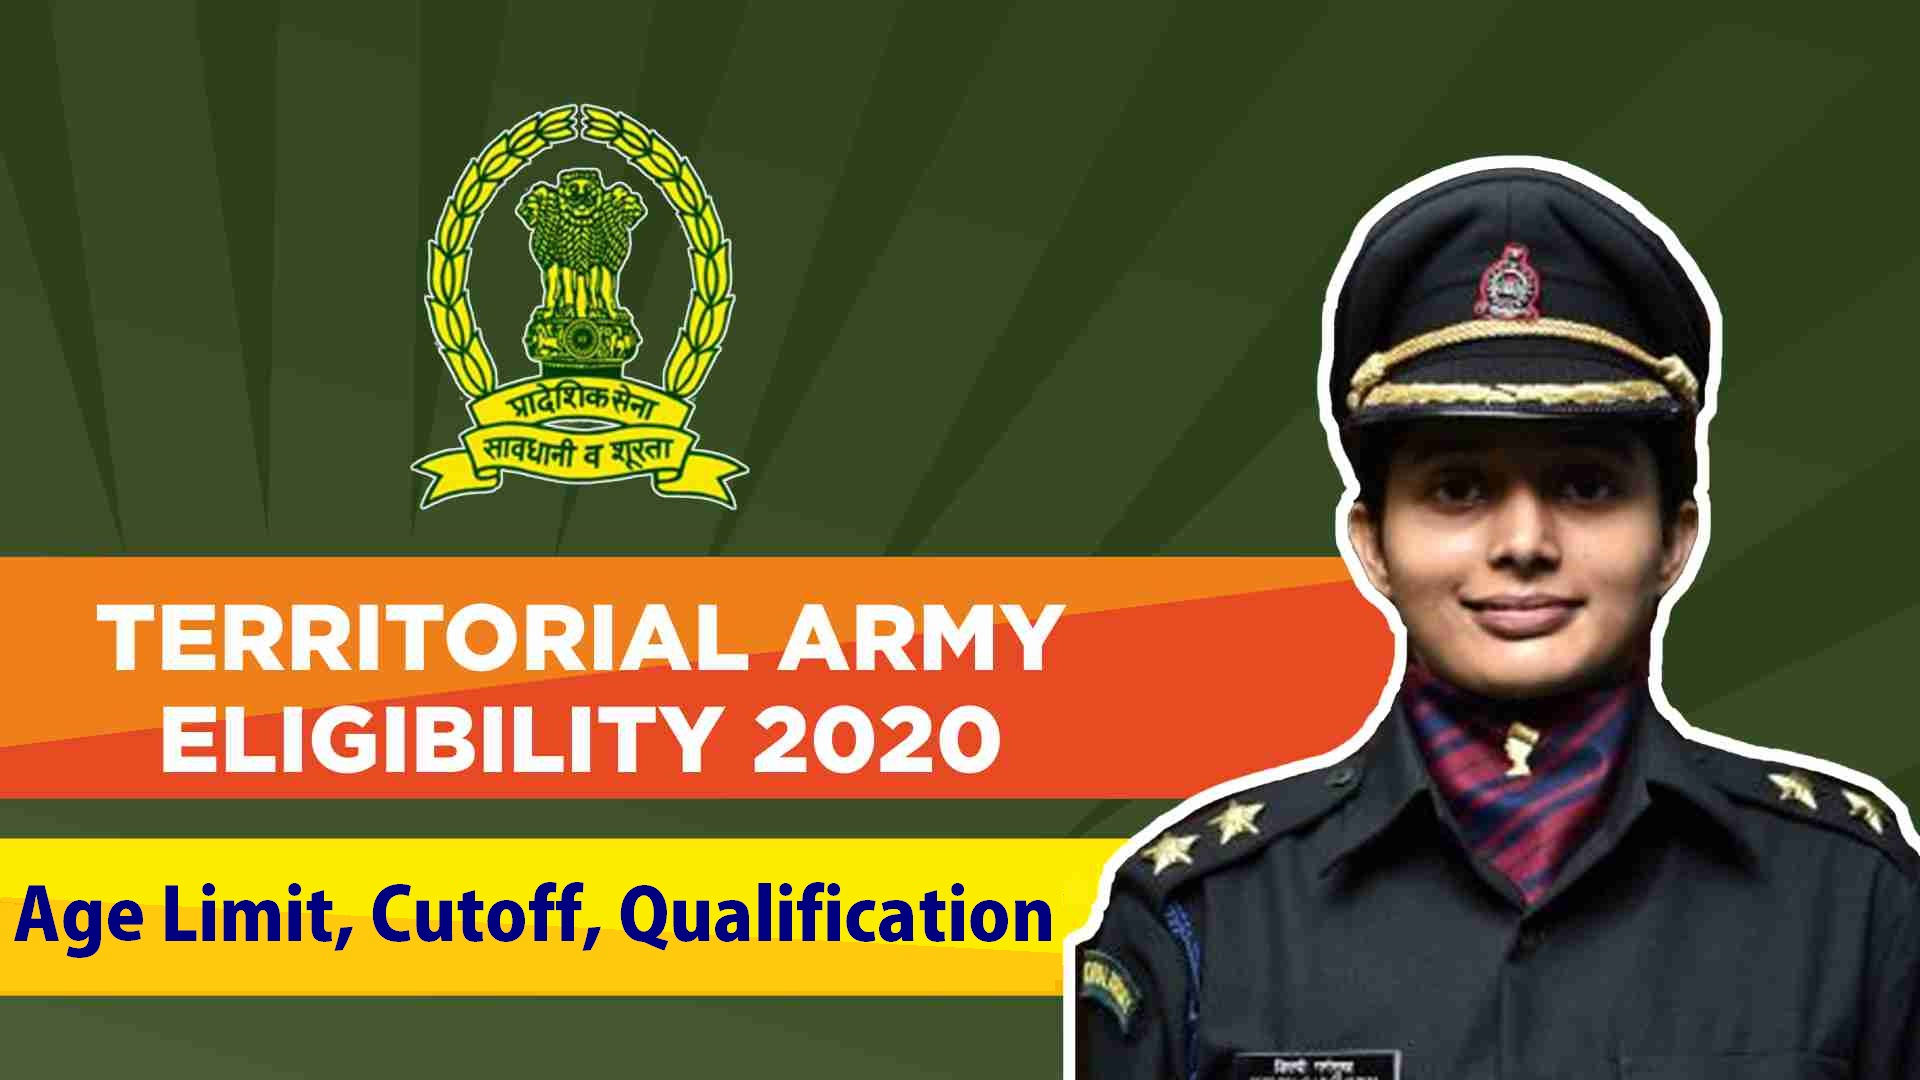 Territorial Army Age Limit